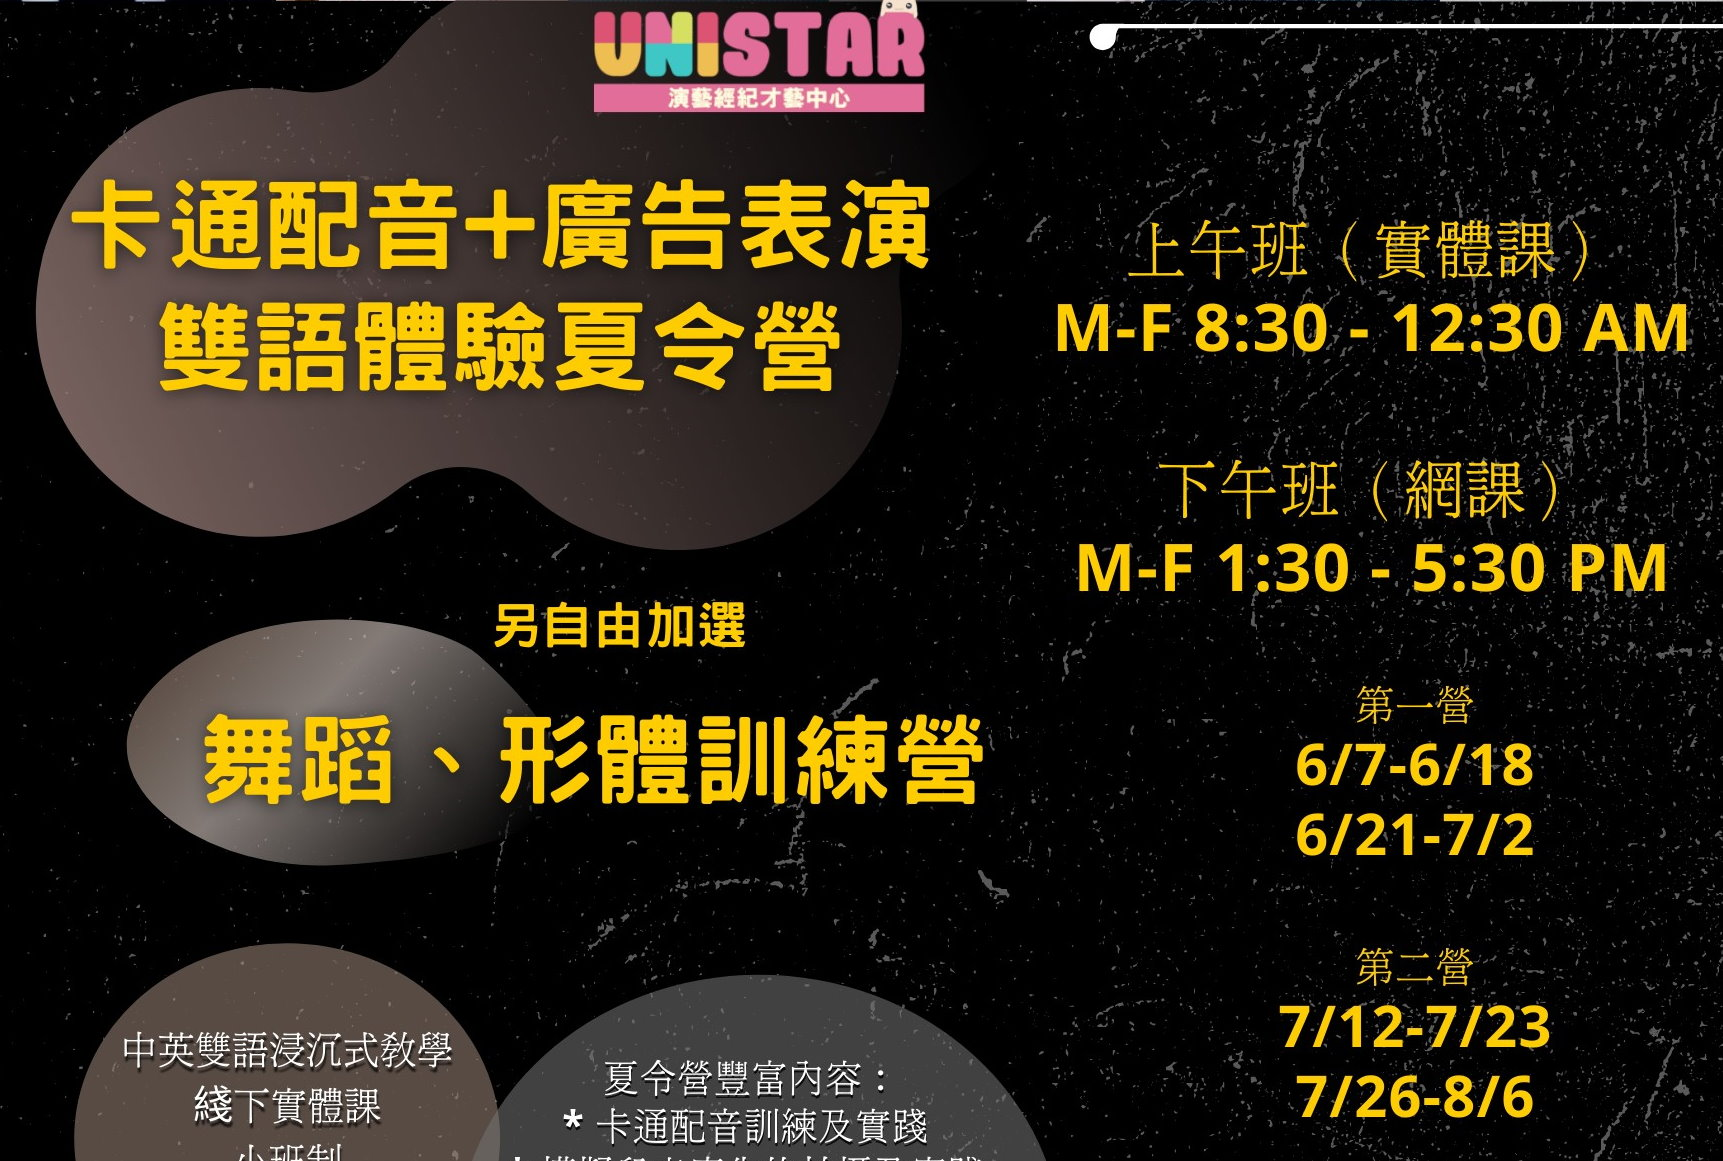 UniStar Summer Camp Voice Over also acting